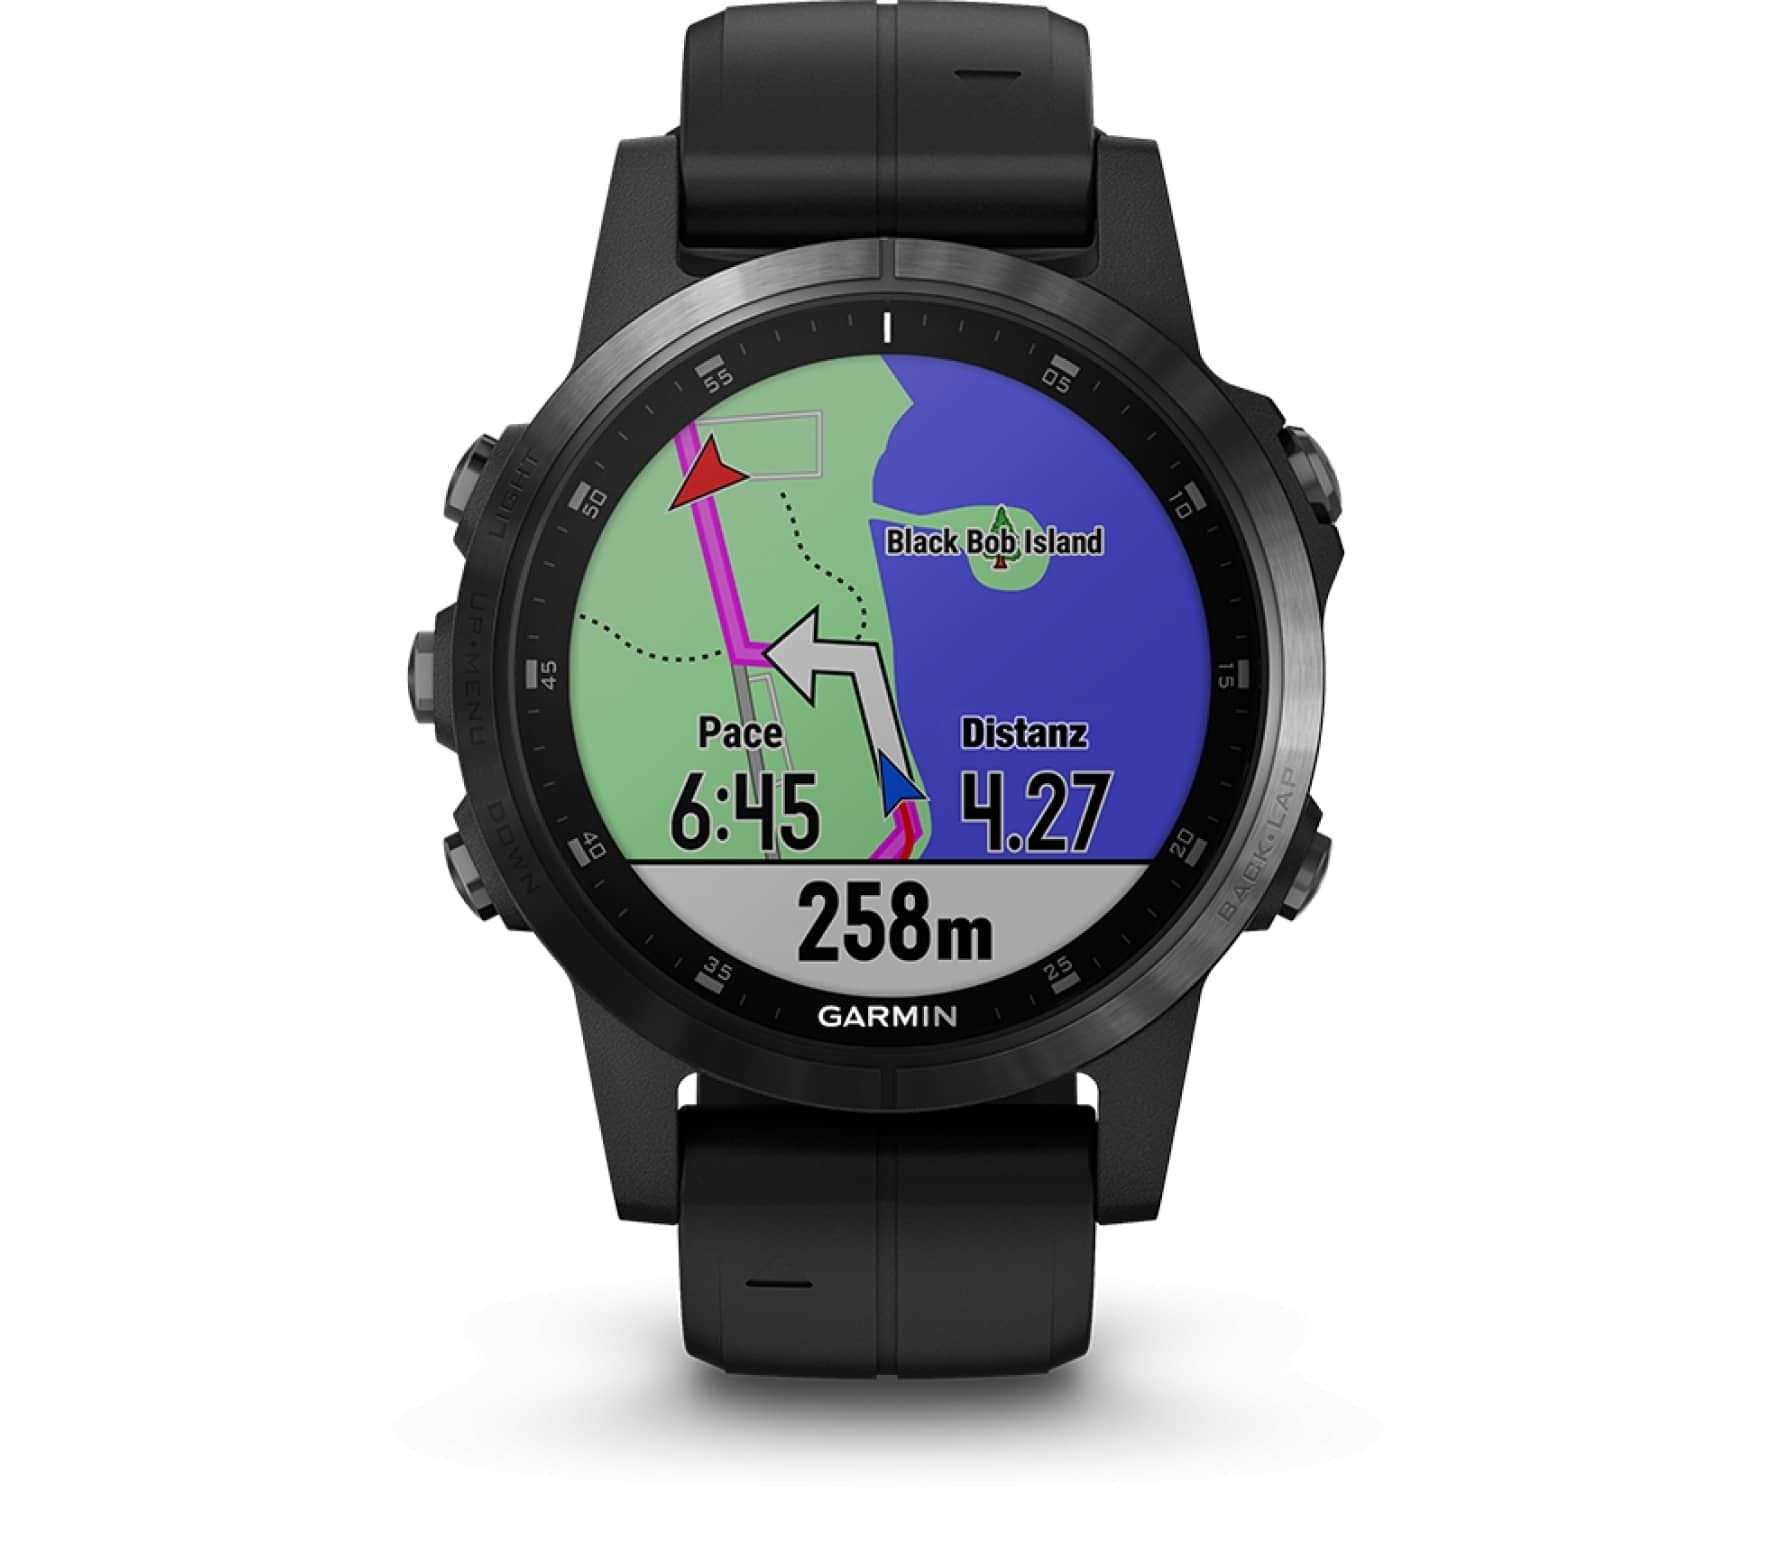 garmin fenix 5s plus saphir edition multisports watch. Black Bedroom Furniture Sets. Home Design Ideas